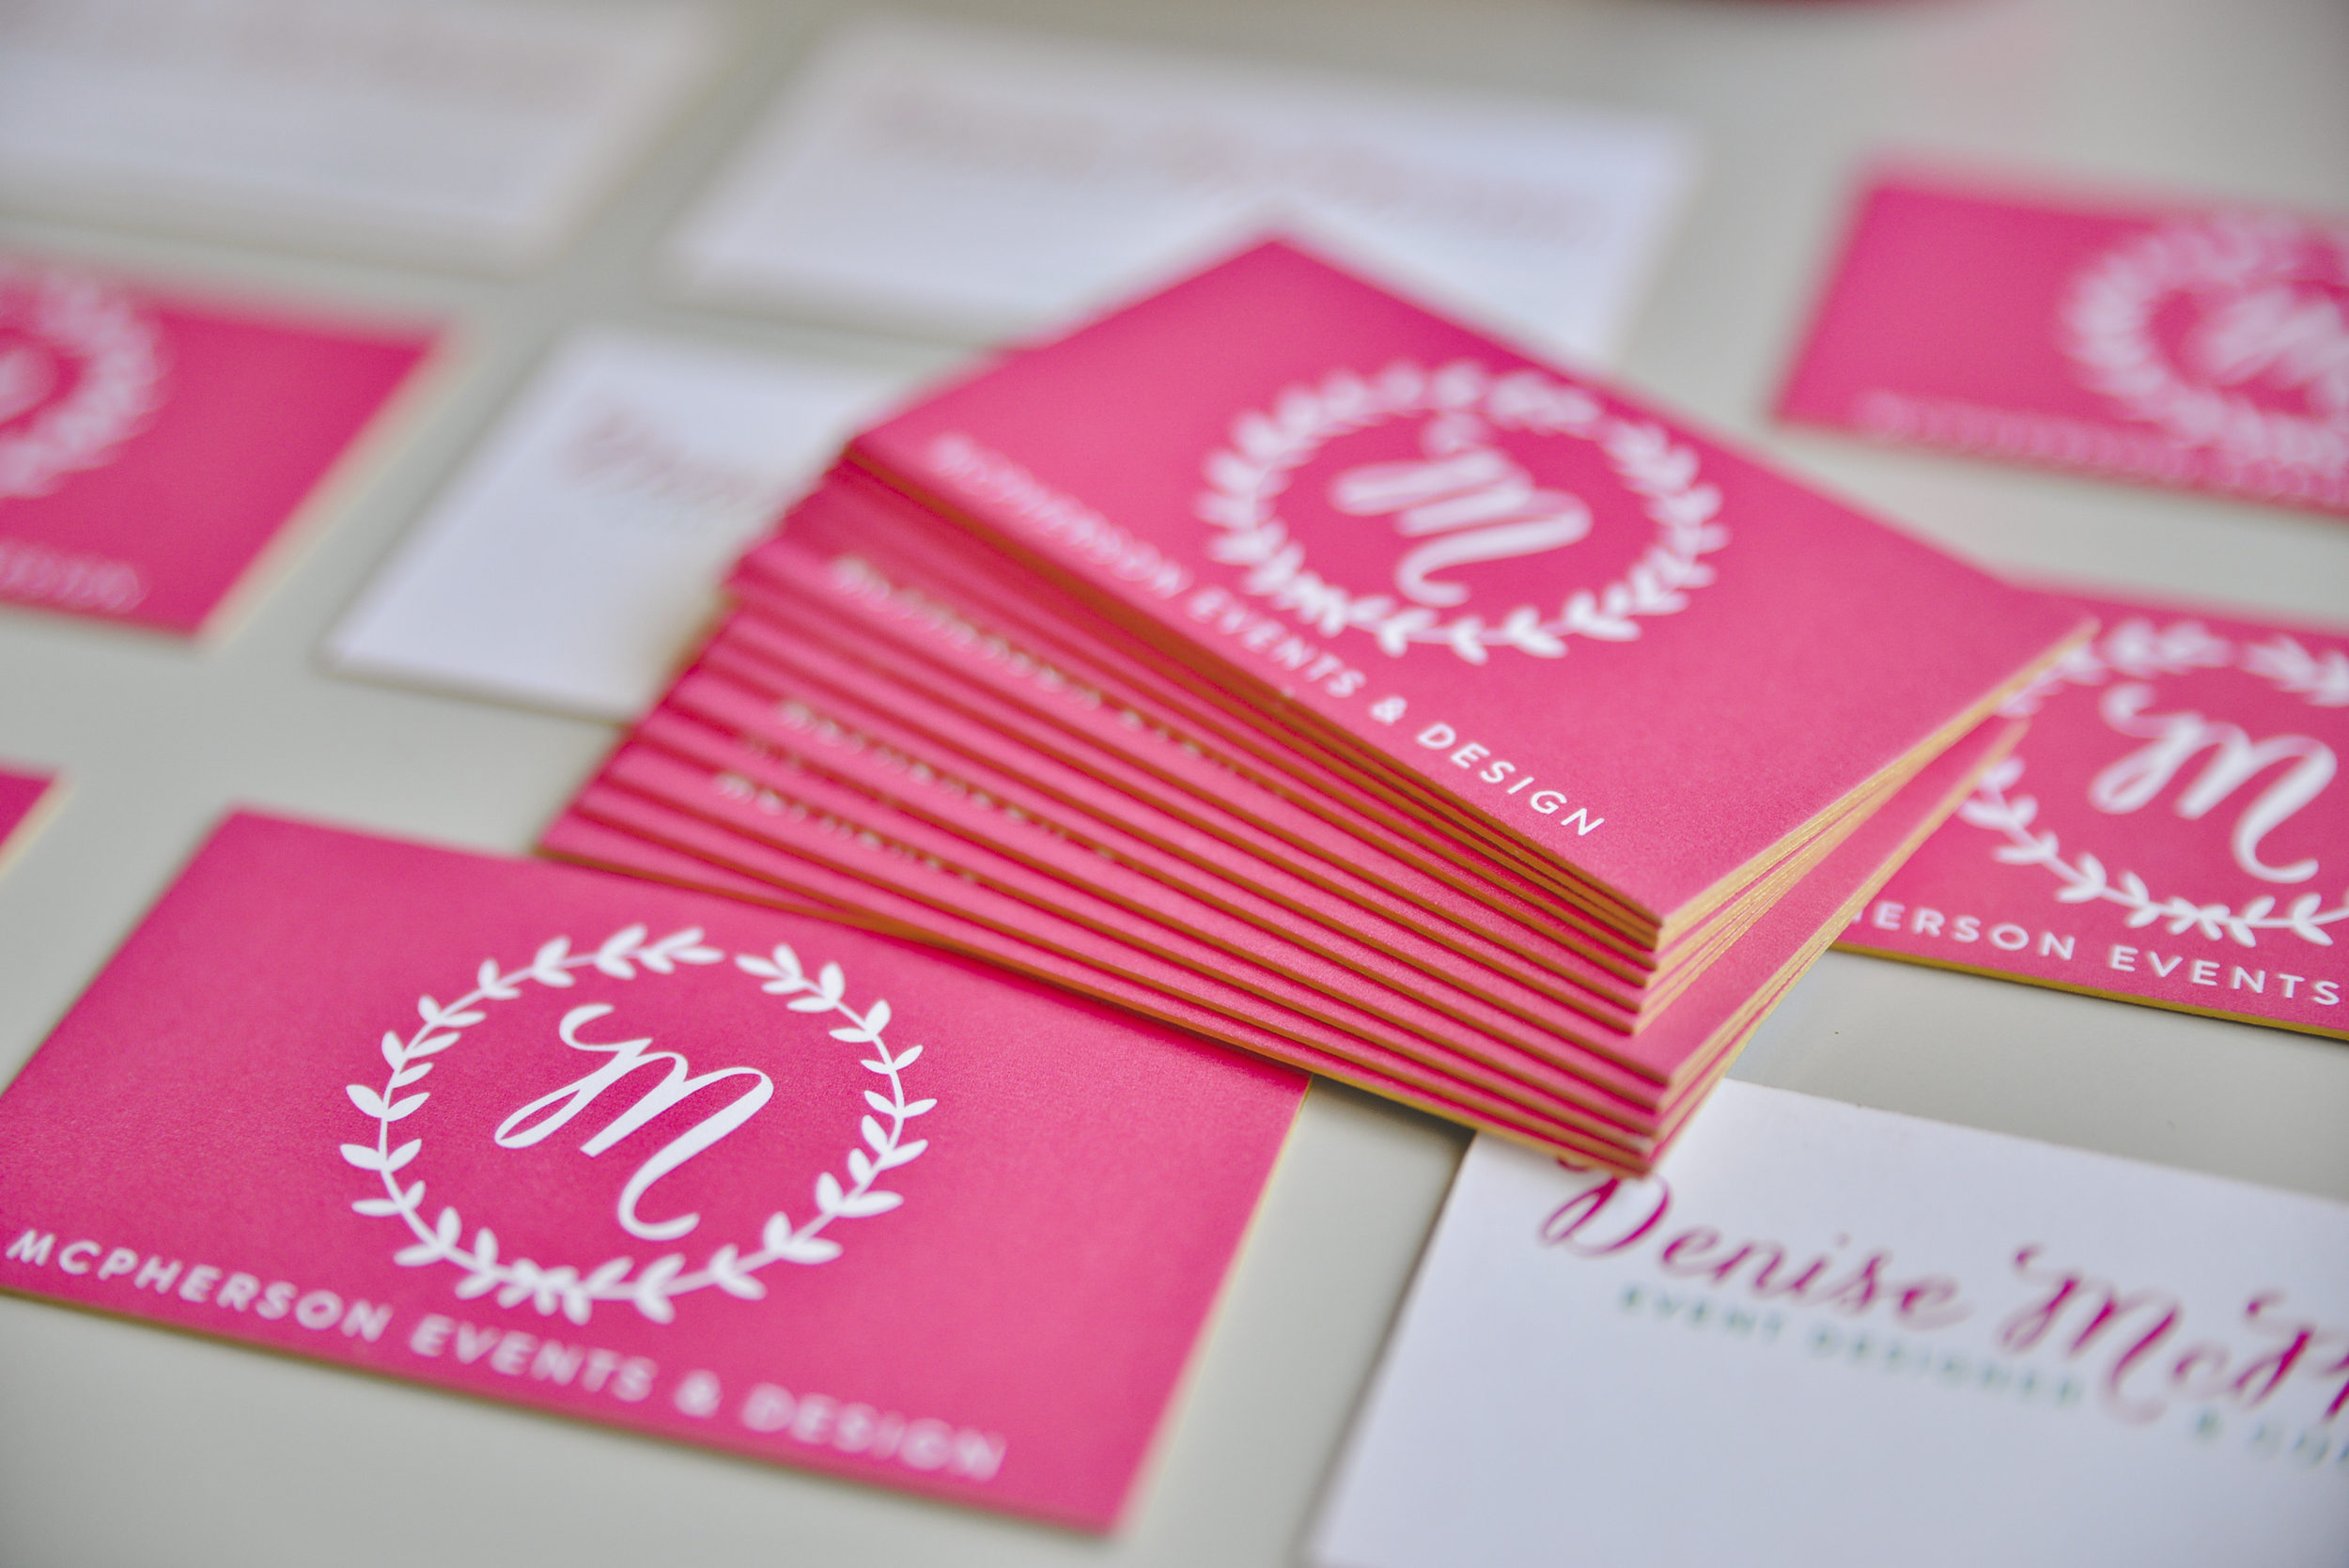 McPherson Events & Design super thick & luxurious business cards with GOLD edges.